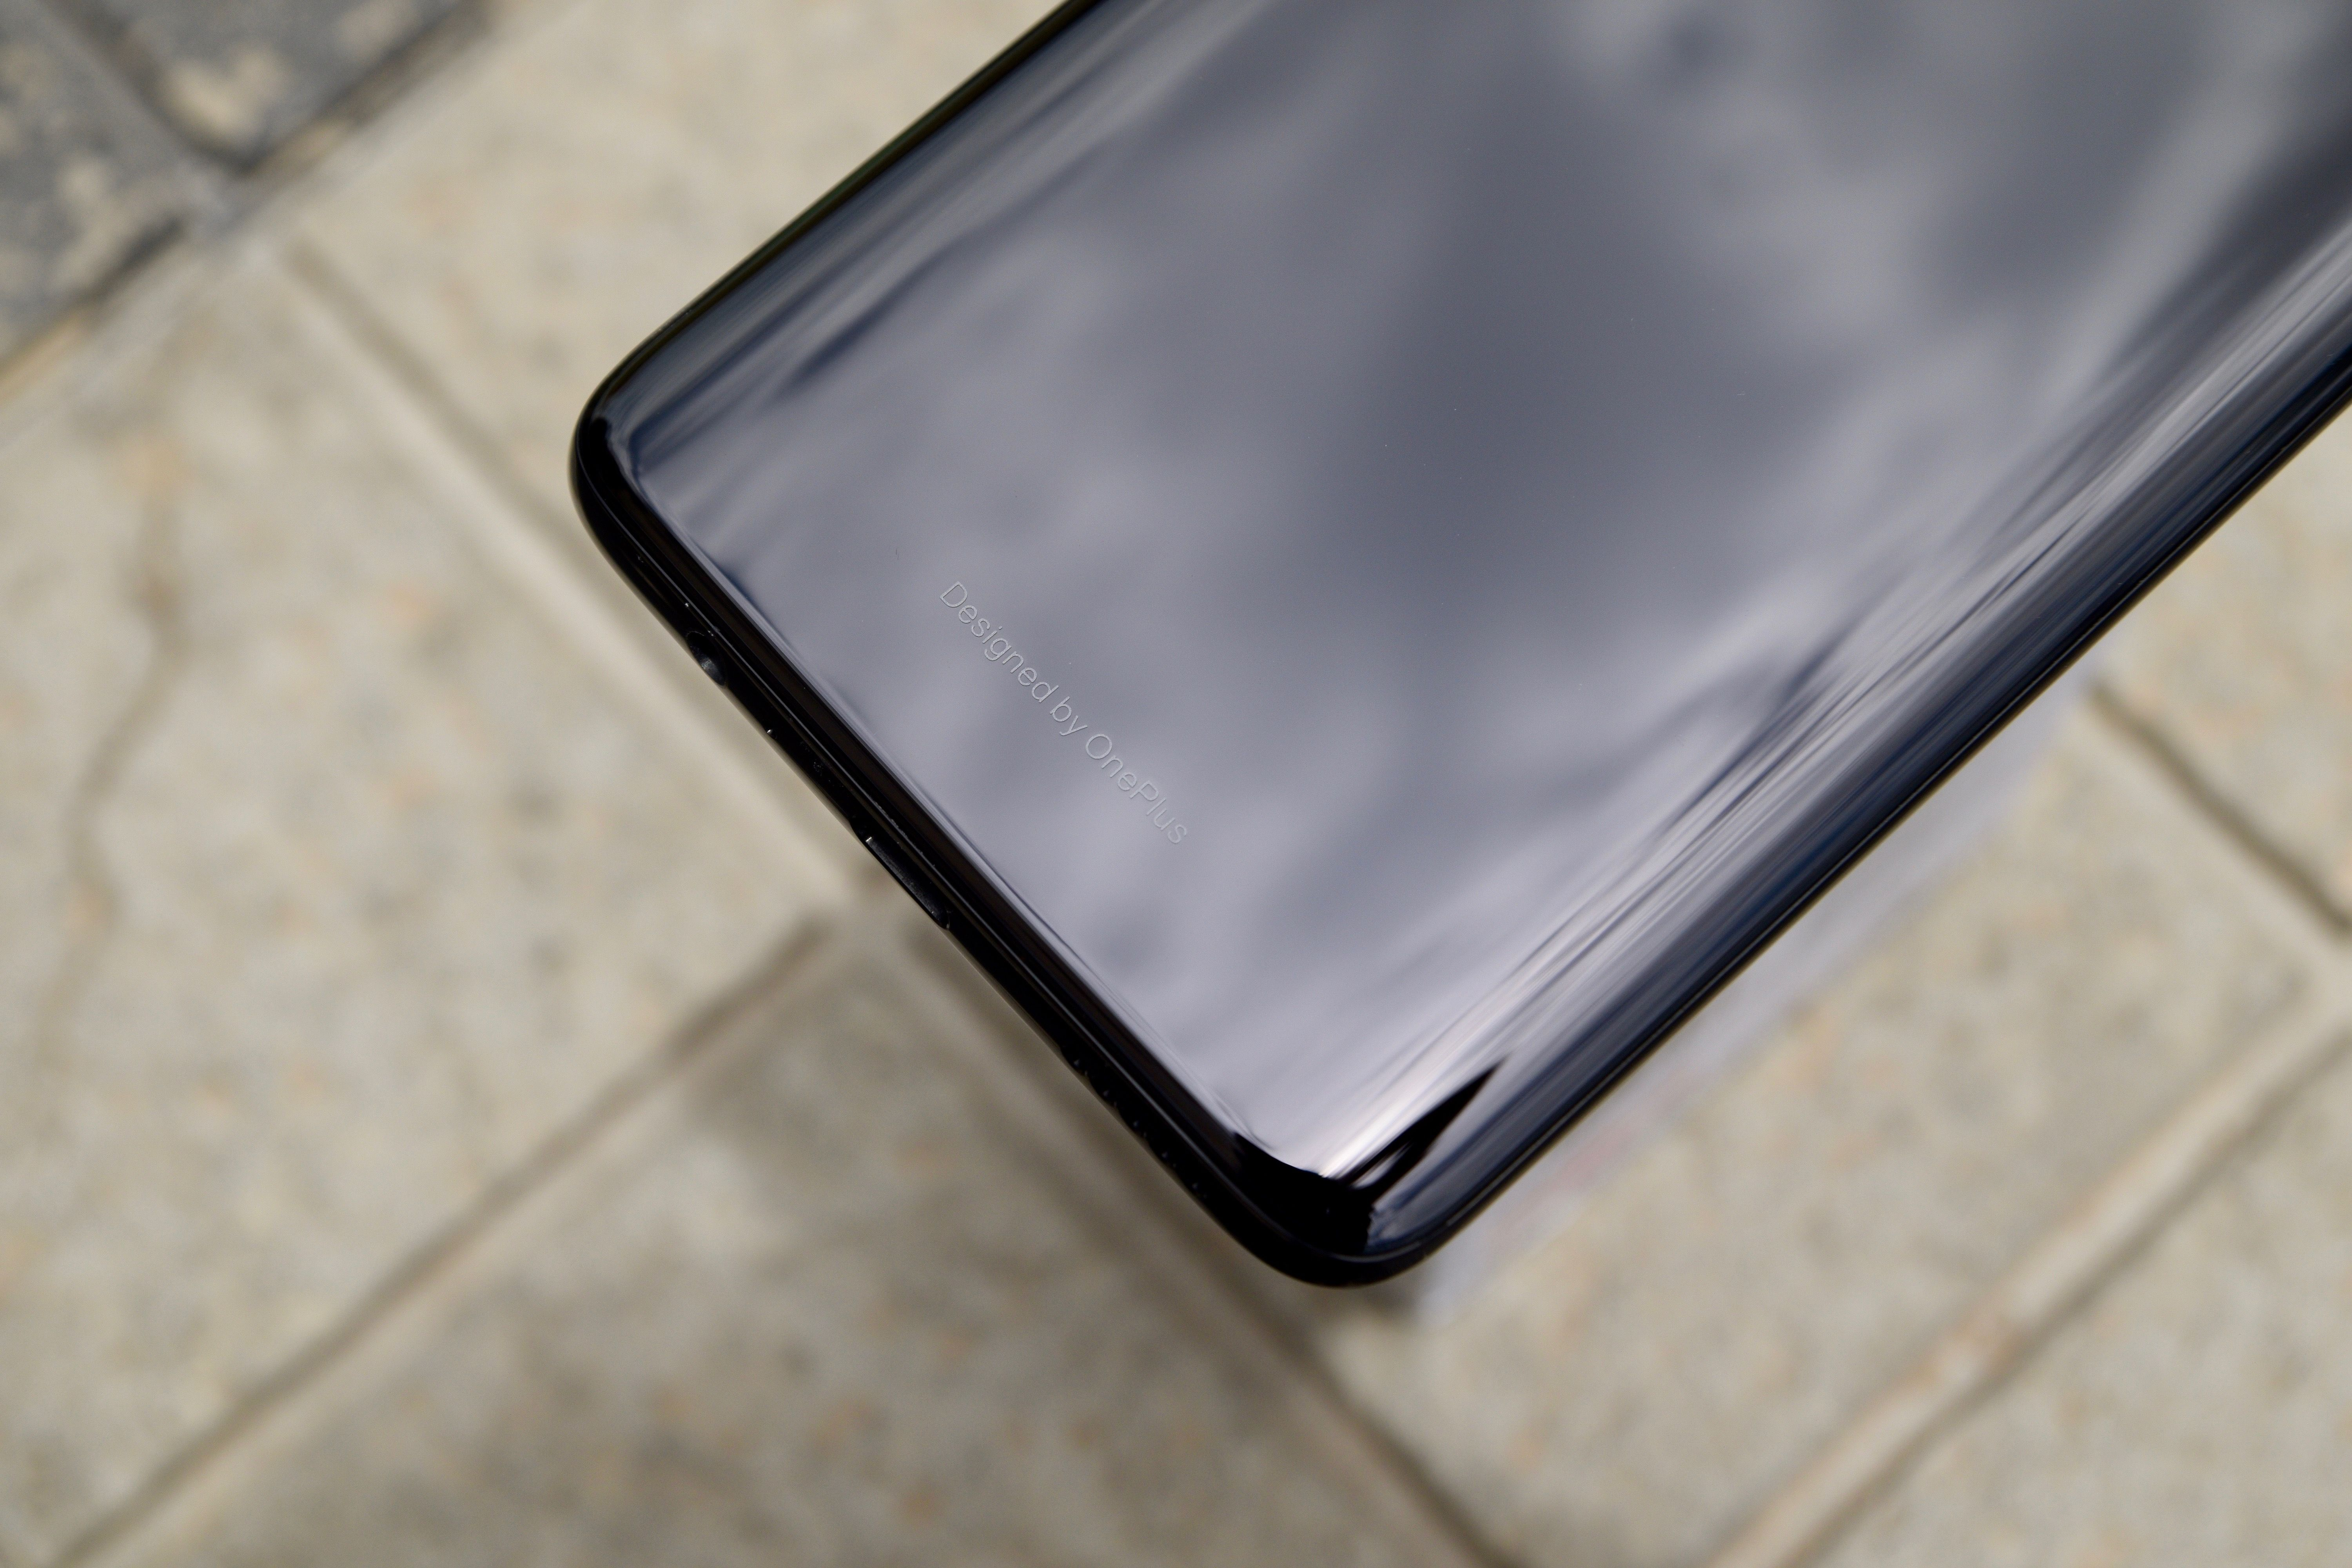 OnePlus 6 'Designed By OnePlus' Tag